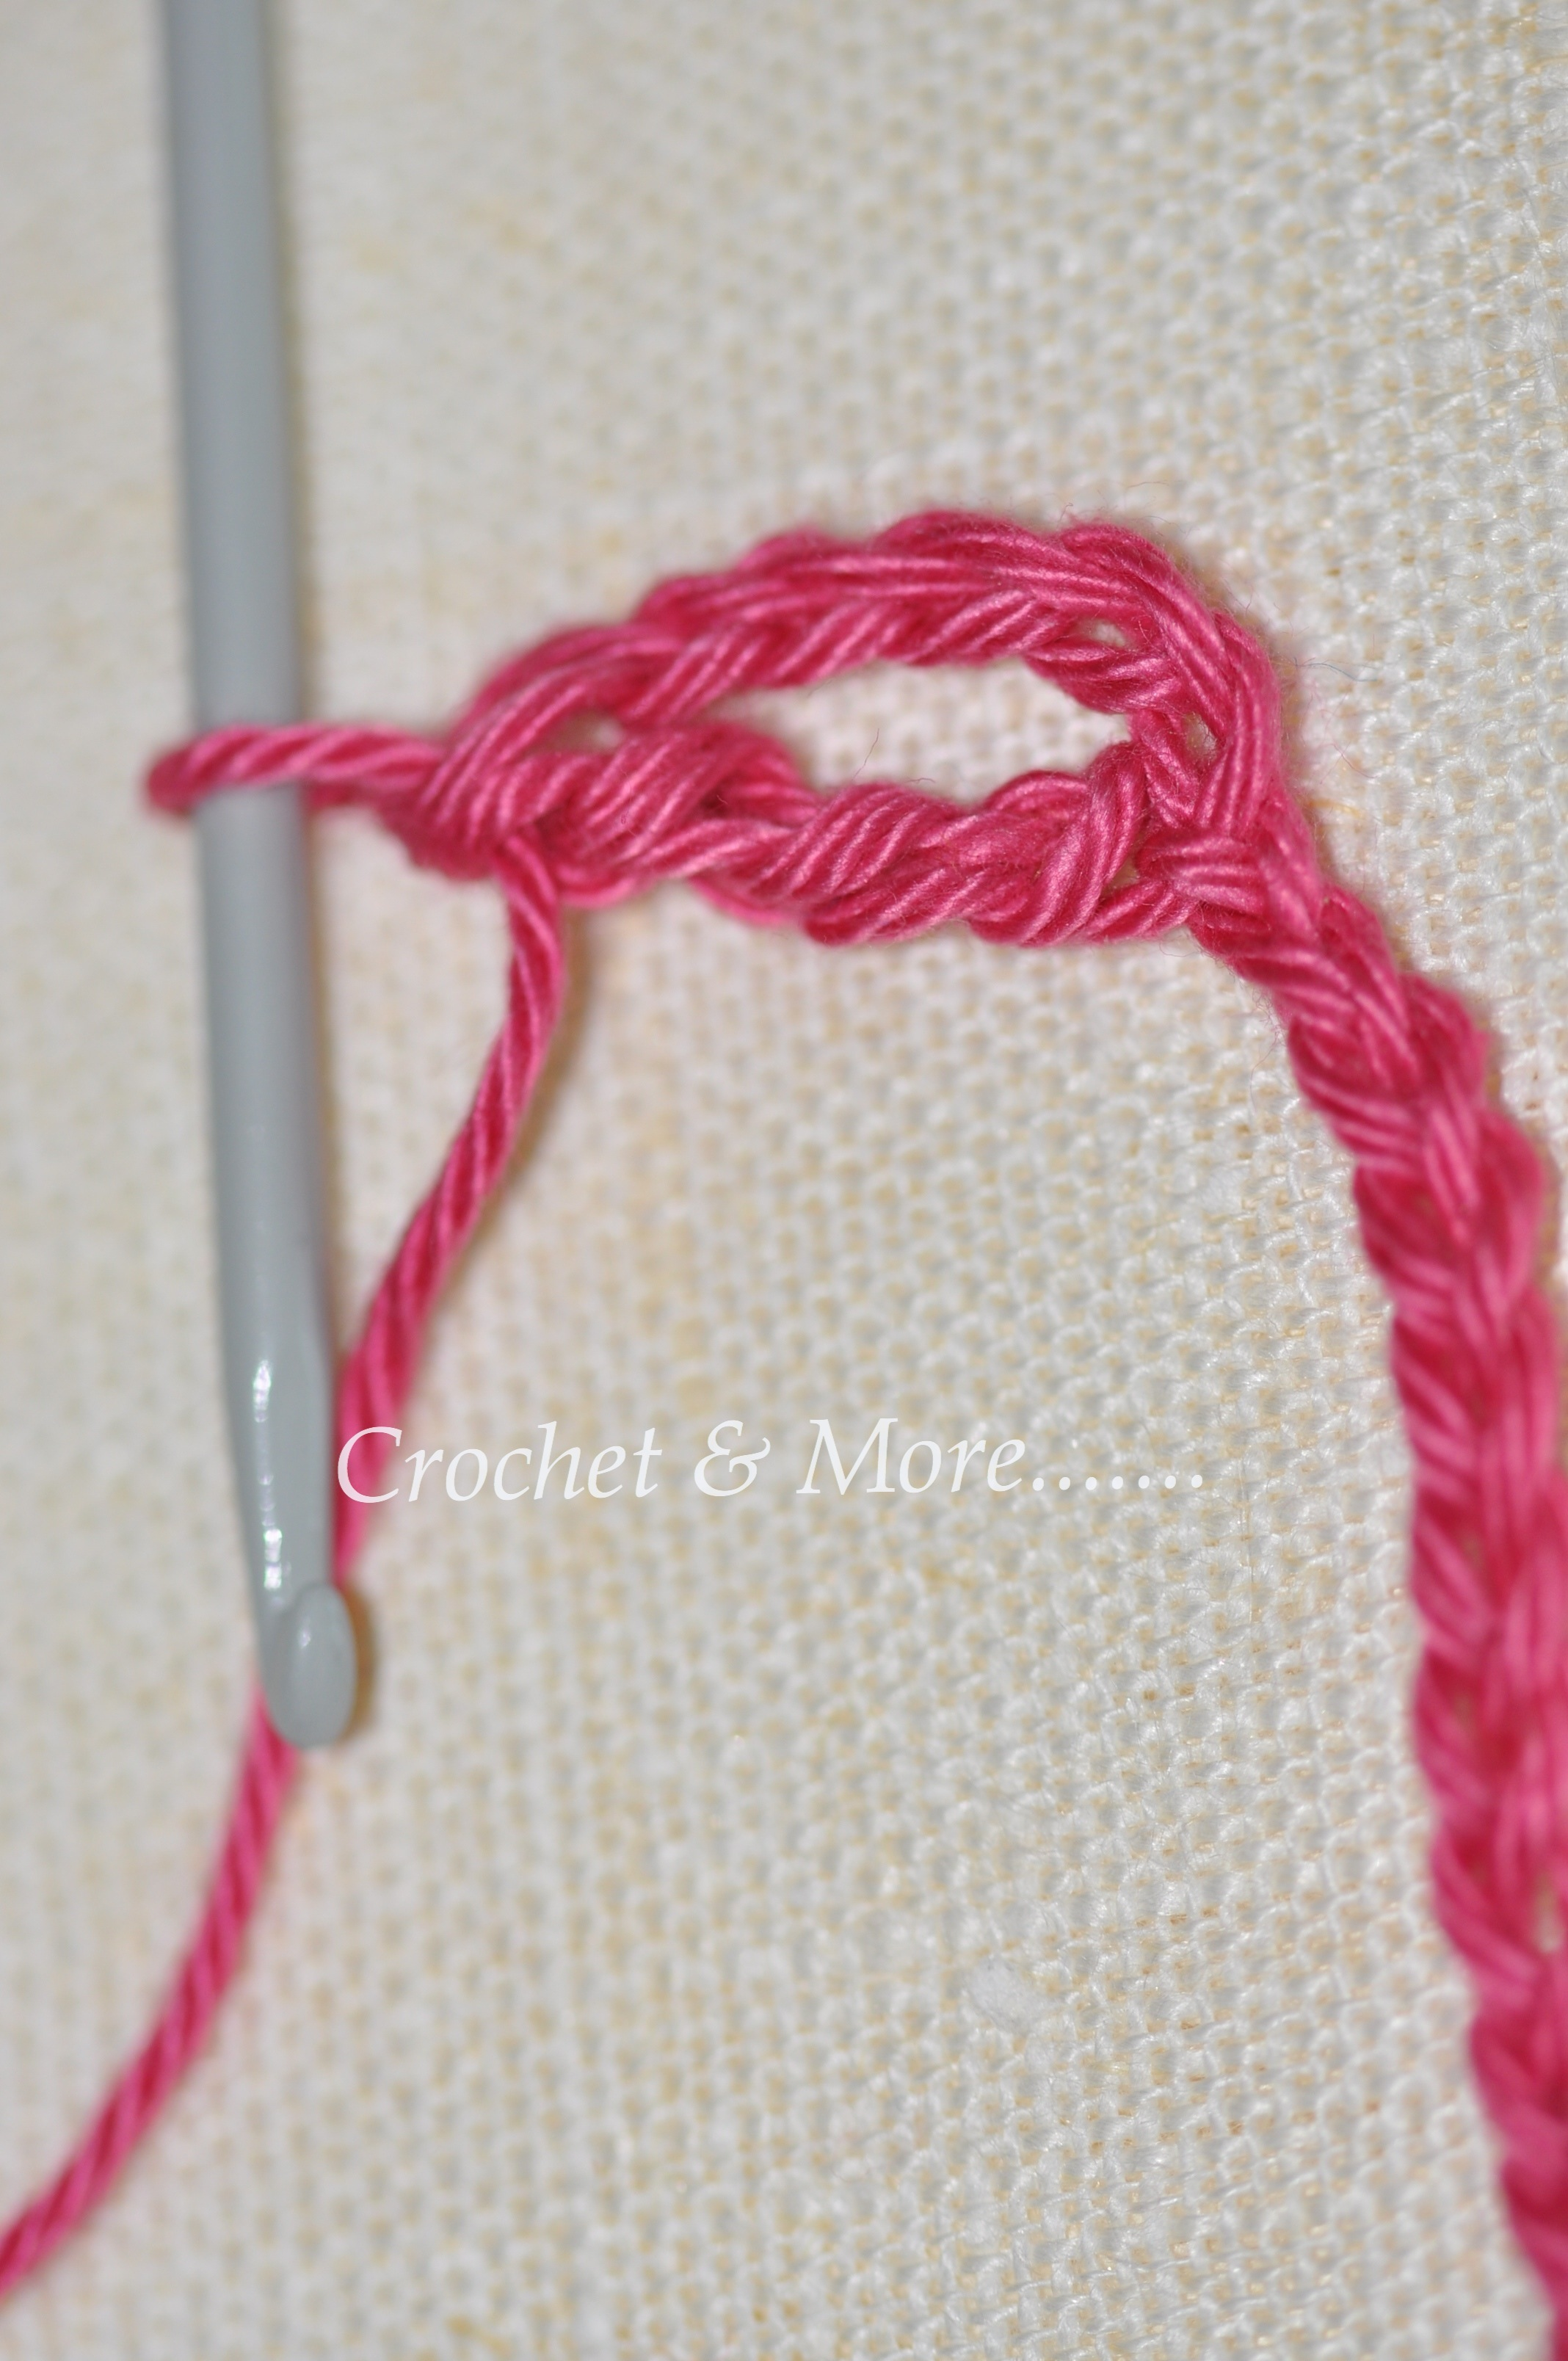 Crochet Stitches Dtr : Beginner?s Basic Crochet Stitches - Tr and dtr crochetnmore